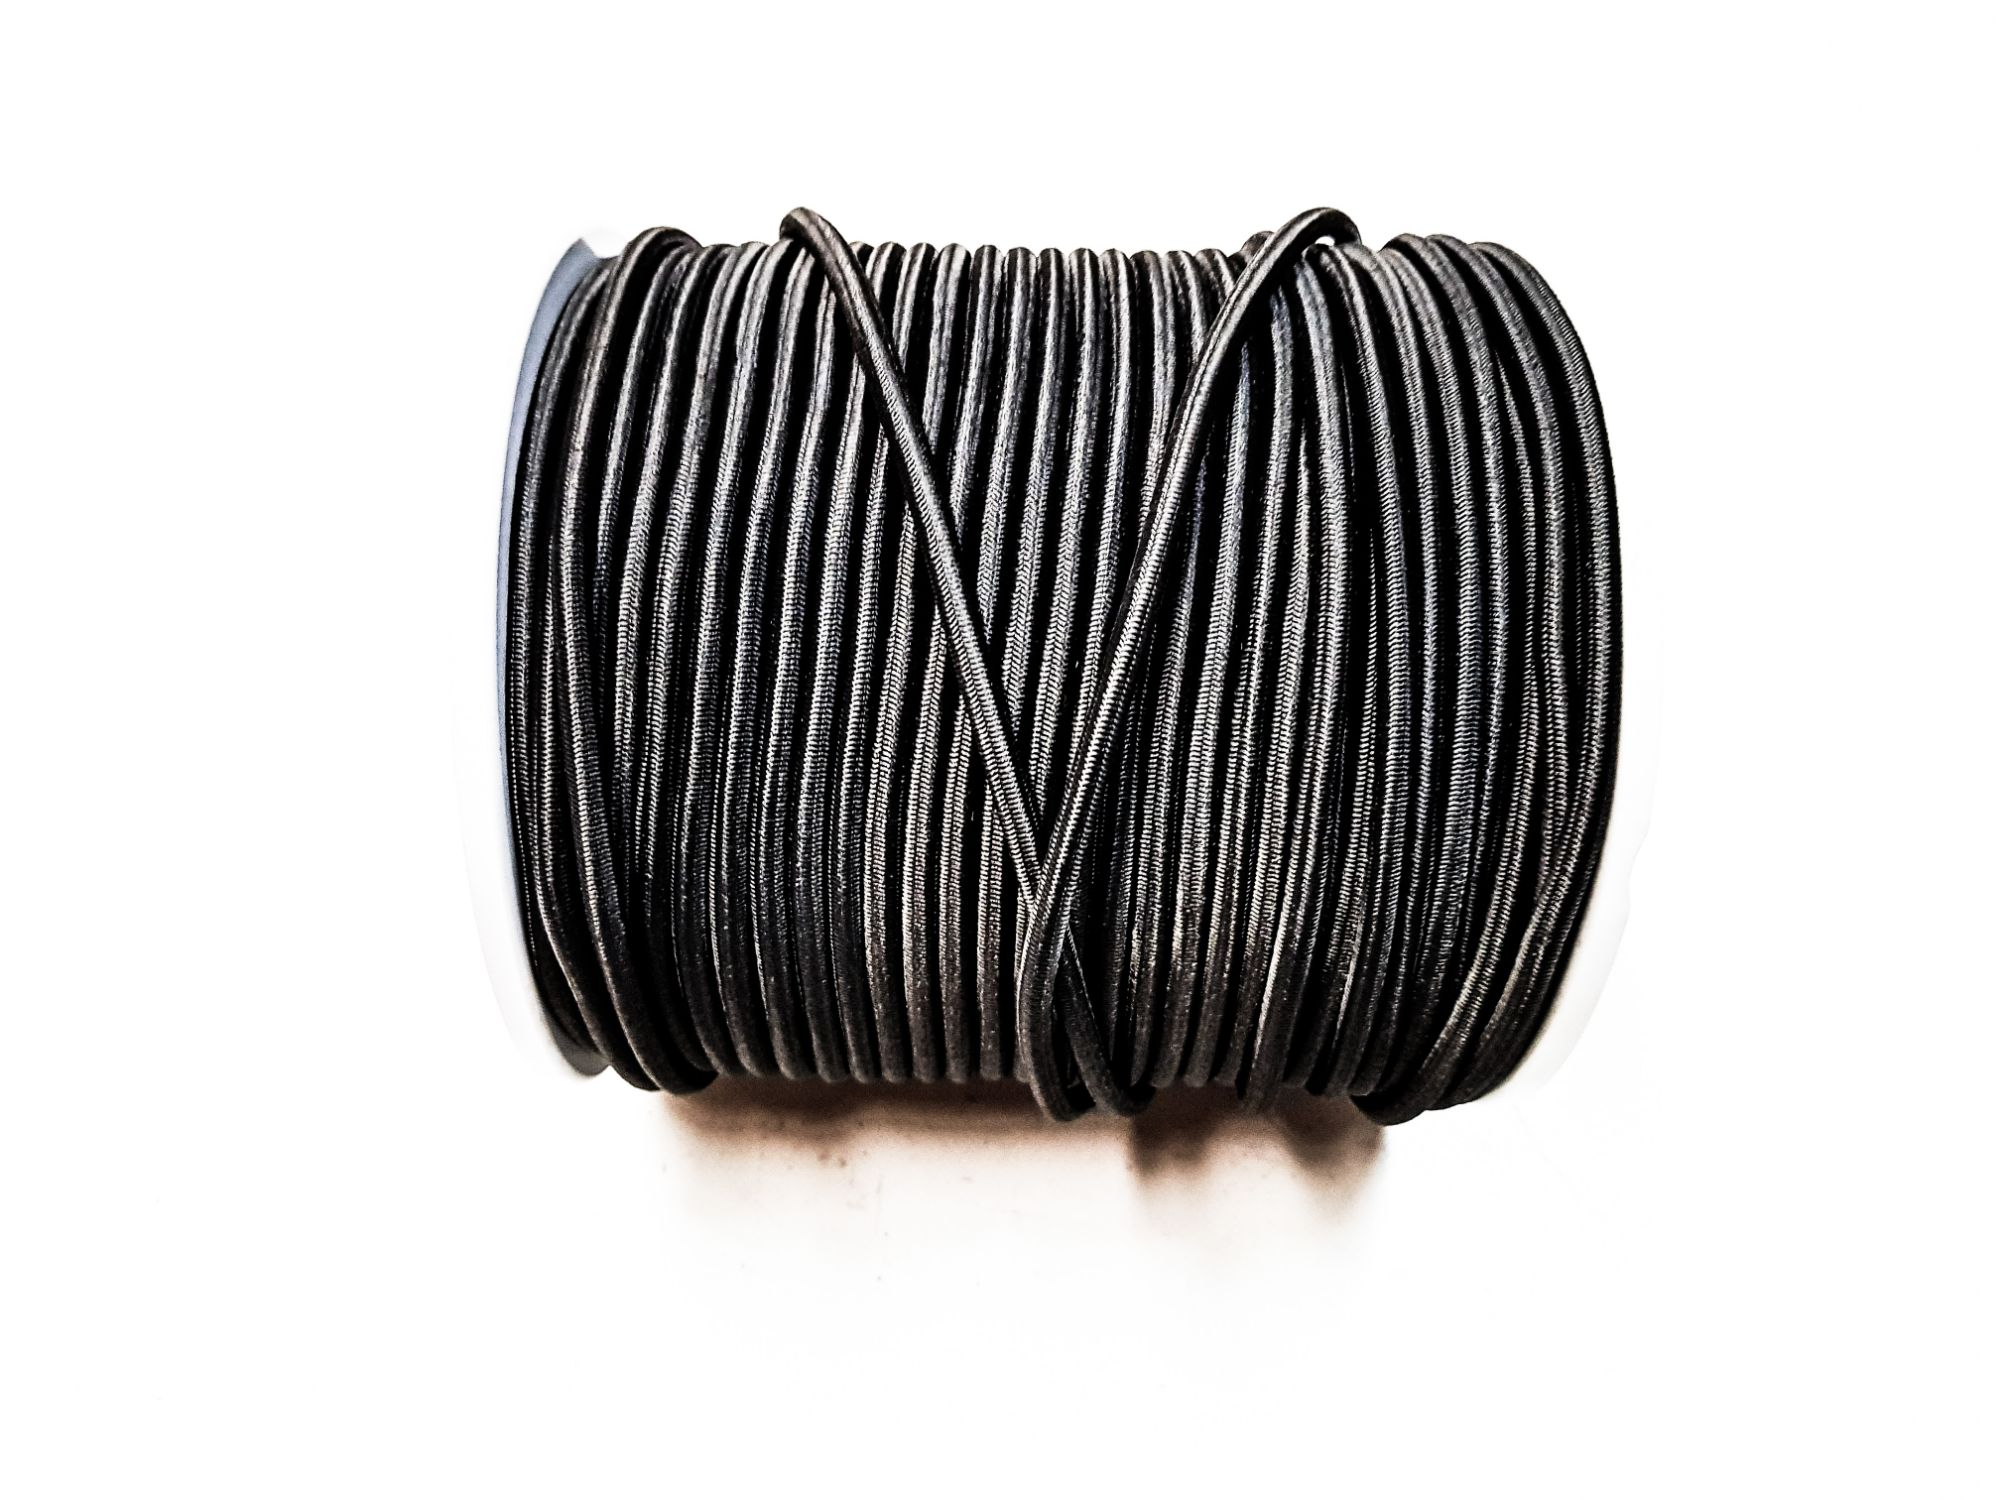 Stretch Cord and Shock Cord For Sale in Perth, Western Australia